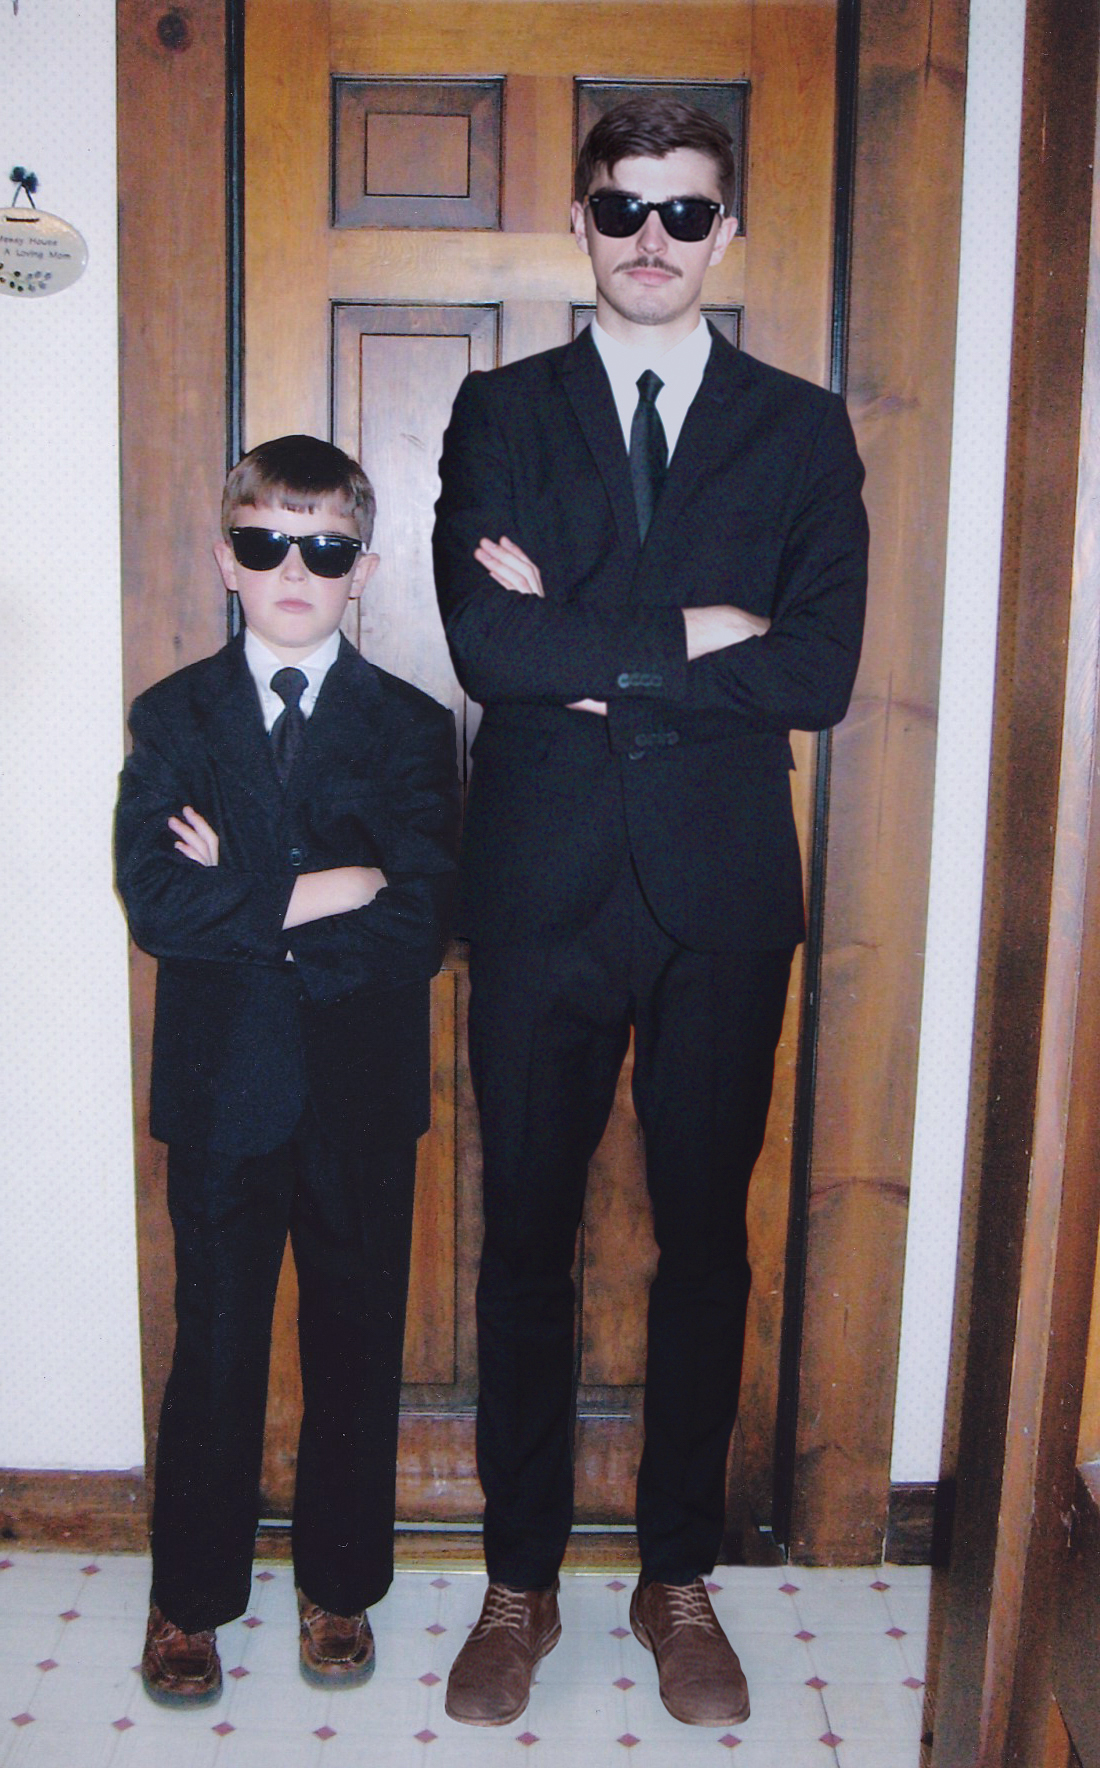 Conor and his younger self in suits with sunglasses